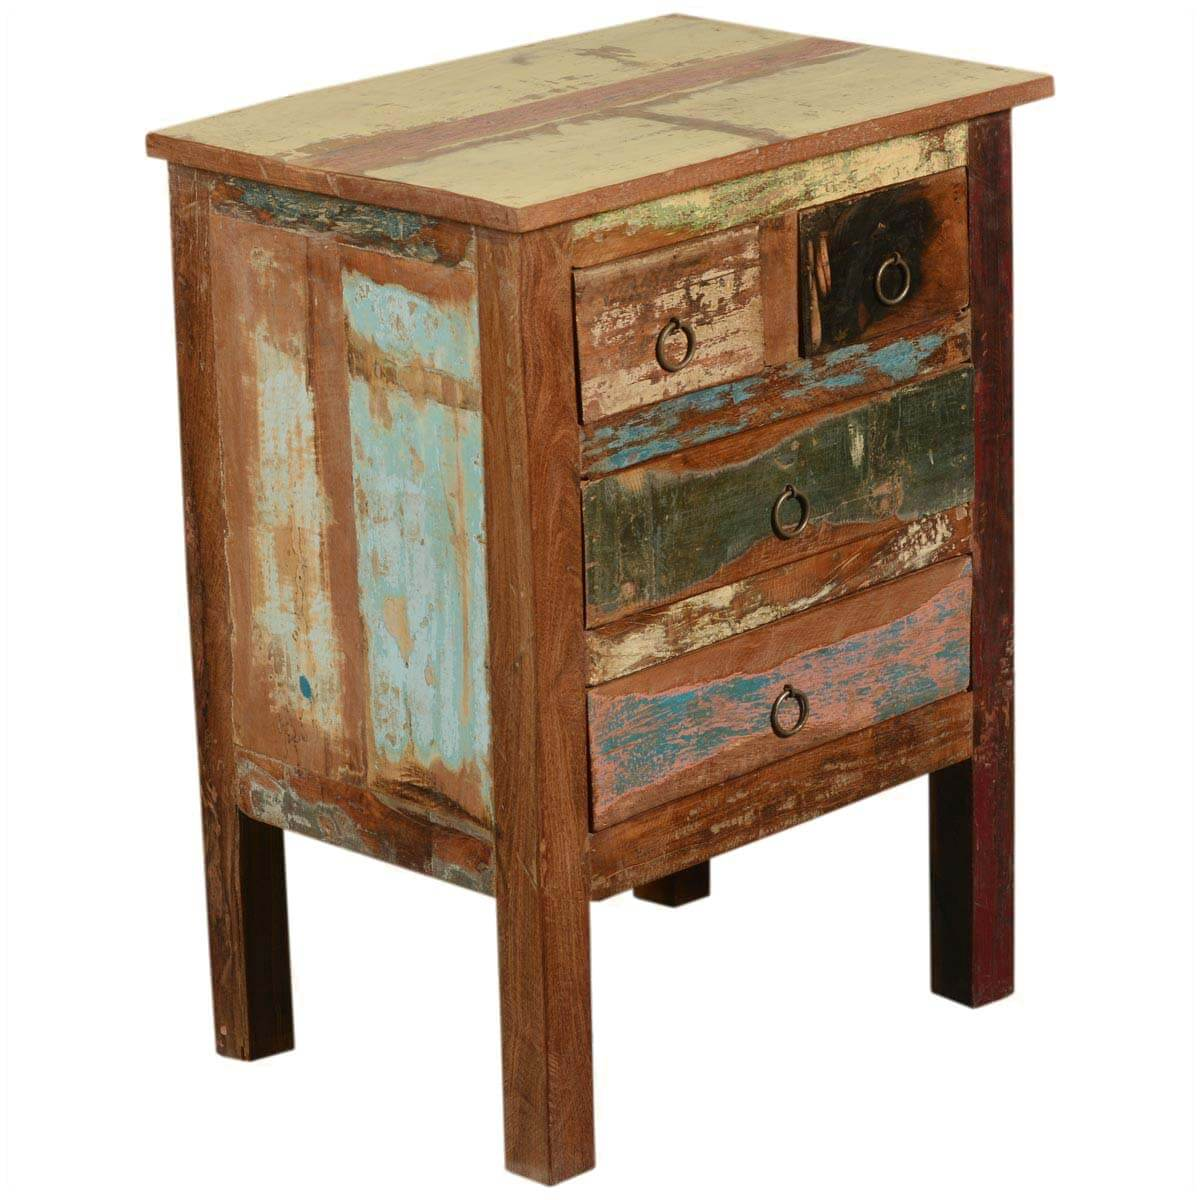 Paint box rustic reclaimed wood standing end table w drawers for End tables with drawers